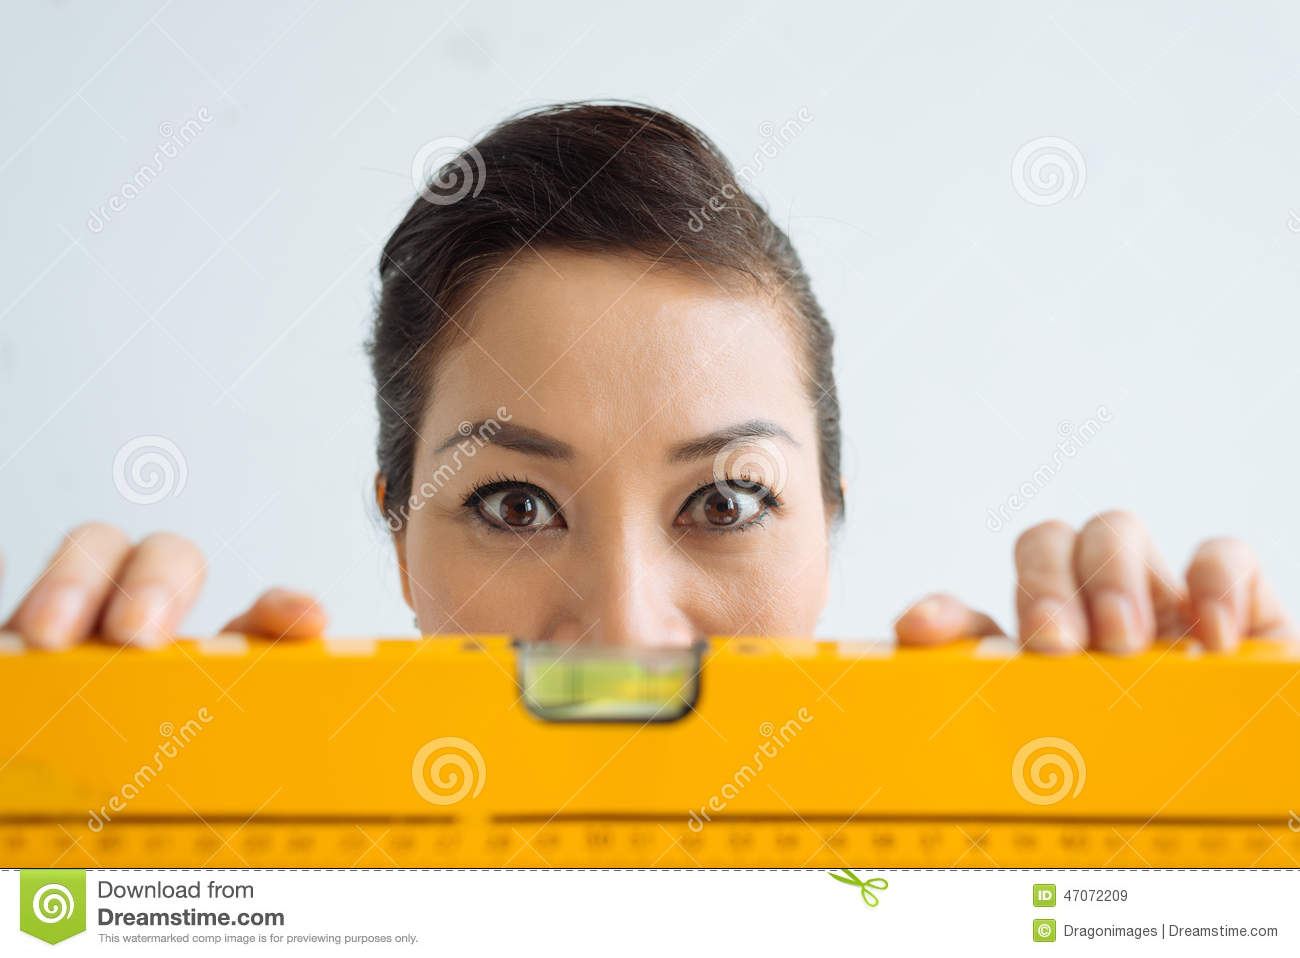 Woman with wide open eyes